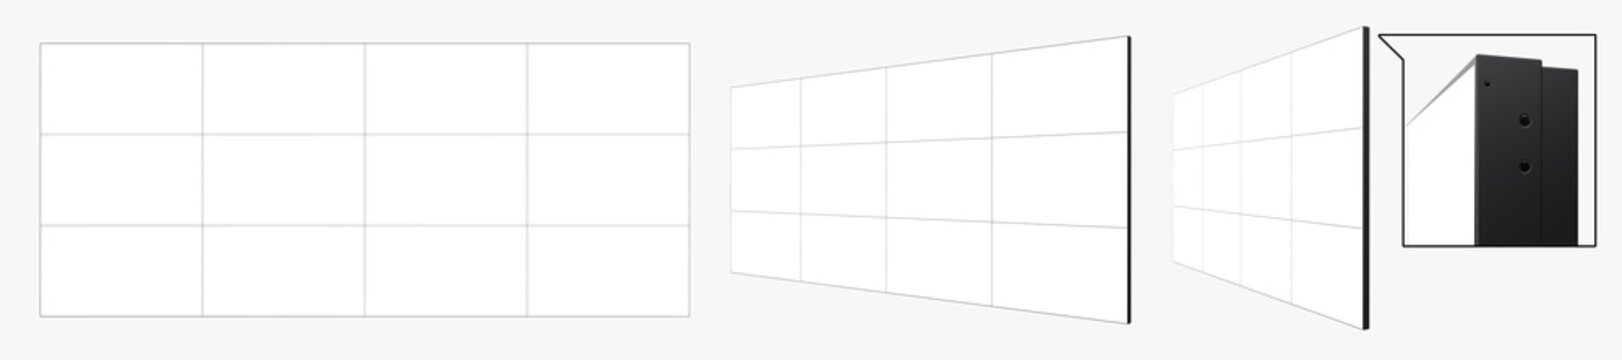 Set of Views of Detailed 4x3 Video Wall Templates (12 screens). 3D Render Isolated on White Background.